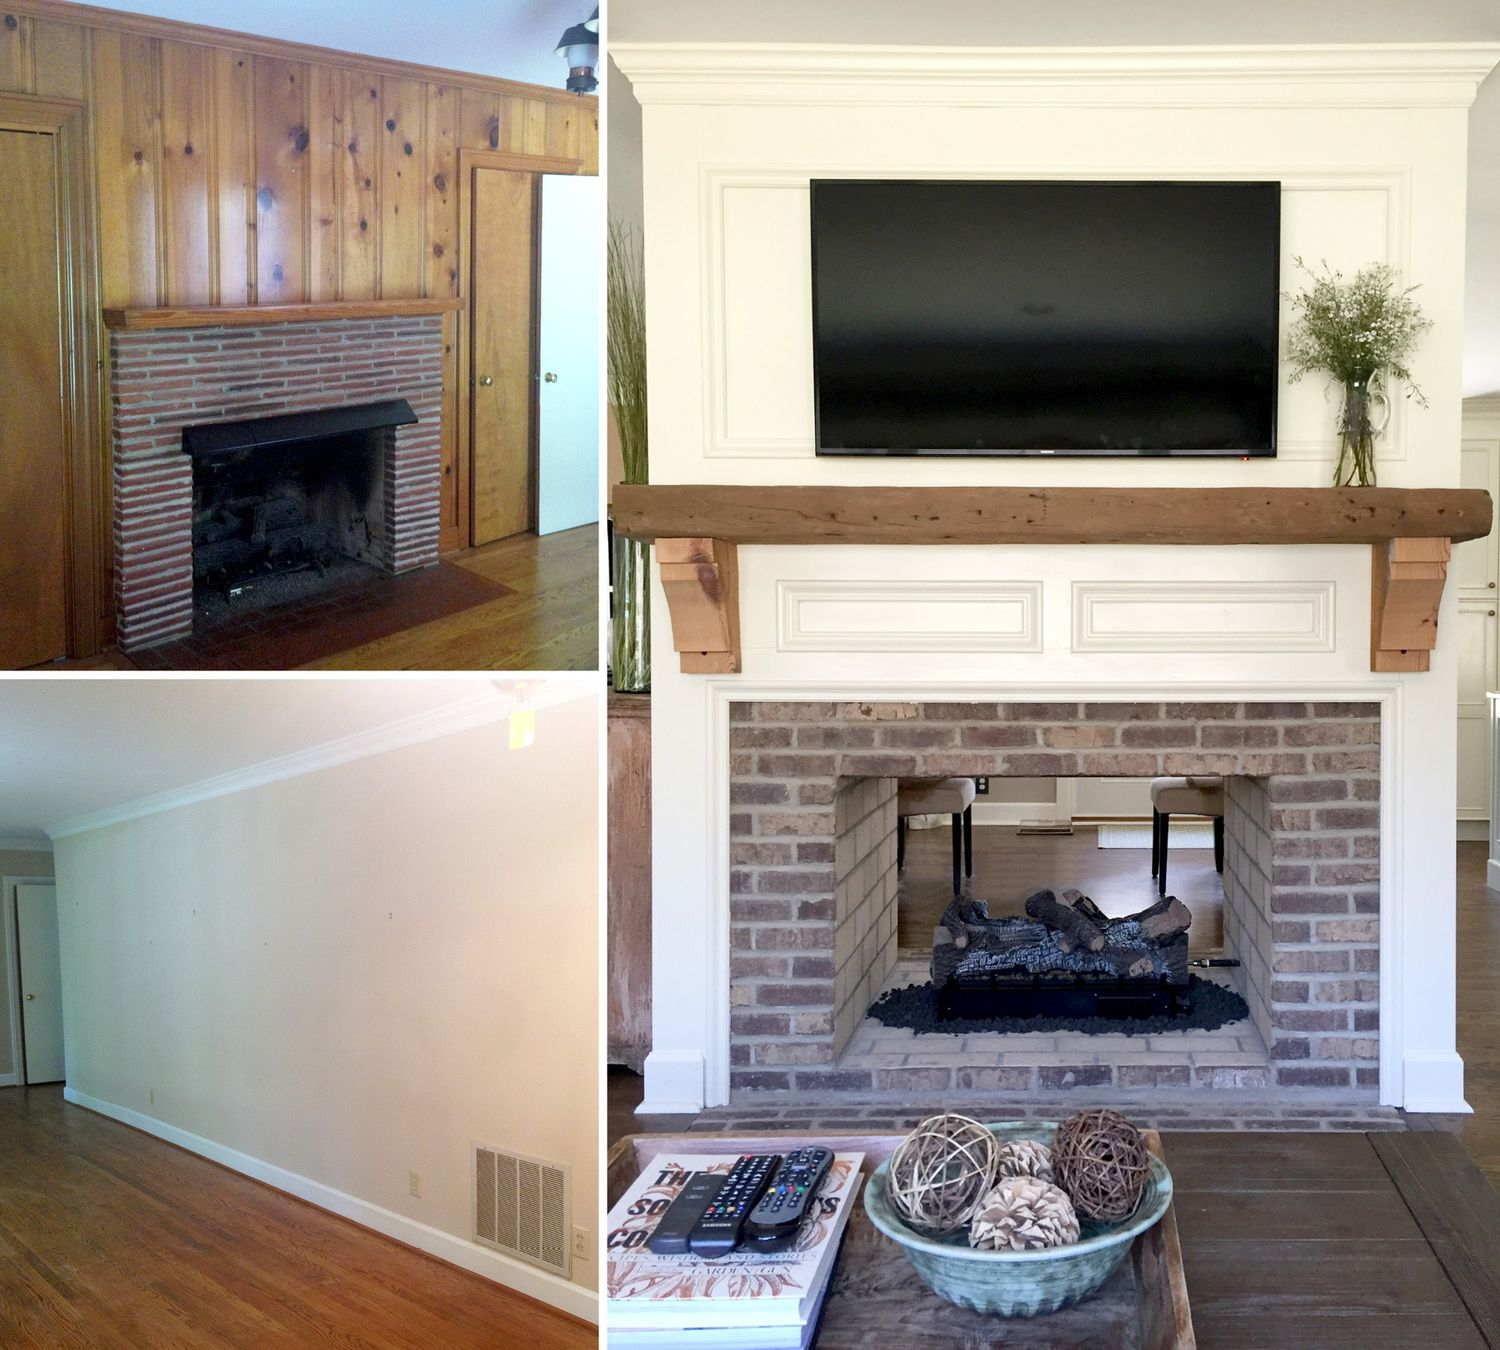 Two Sided Fireplace Insert Luxury Fireplace Renovation Converting A Single Sided Fireplace to